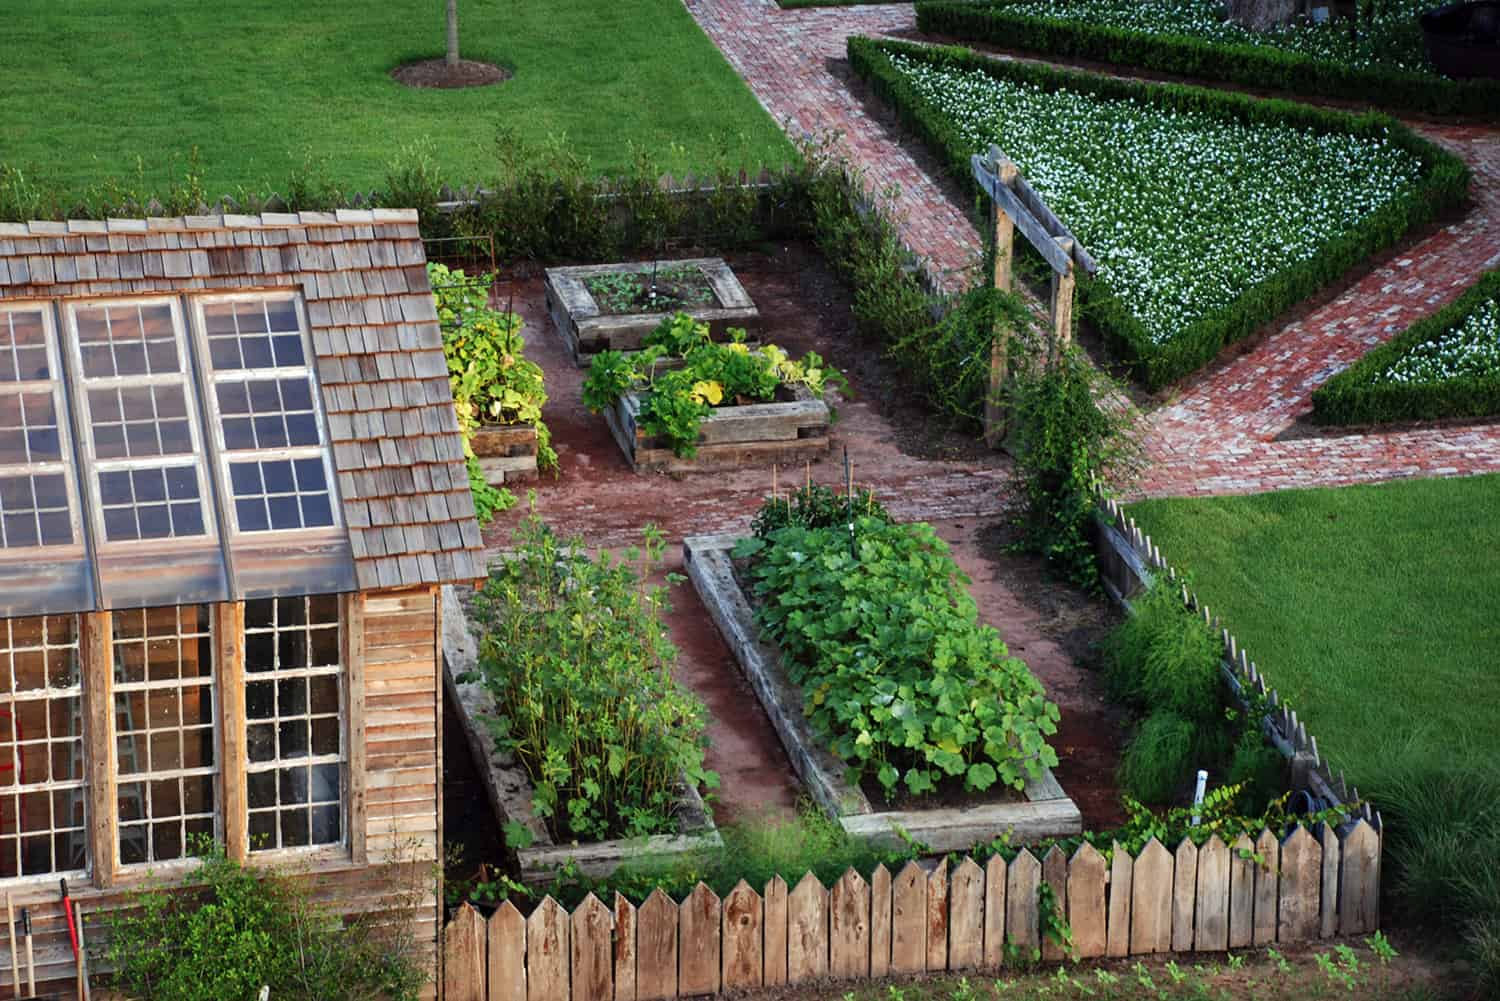 inspiring-vegetable-garden-ideas-potting-shed-with-wood-raised-planter-beds